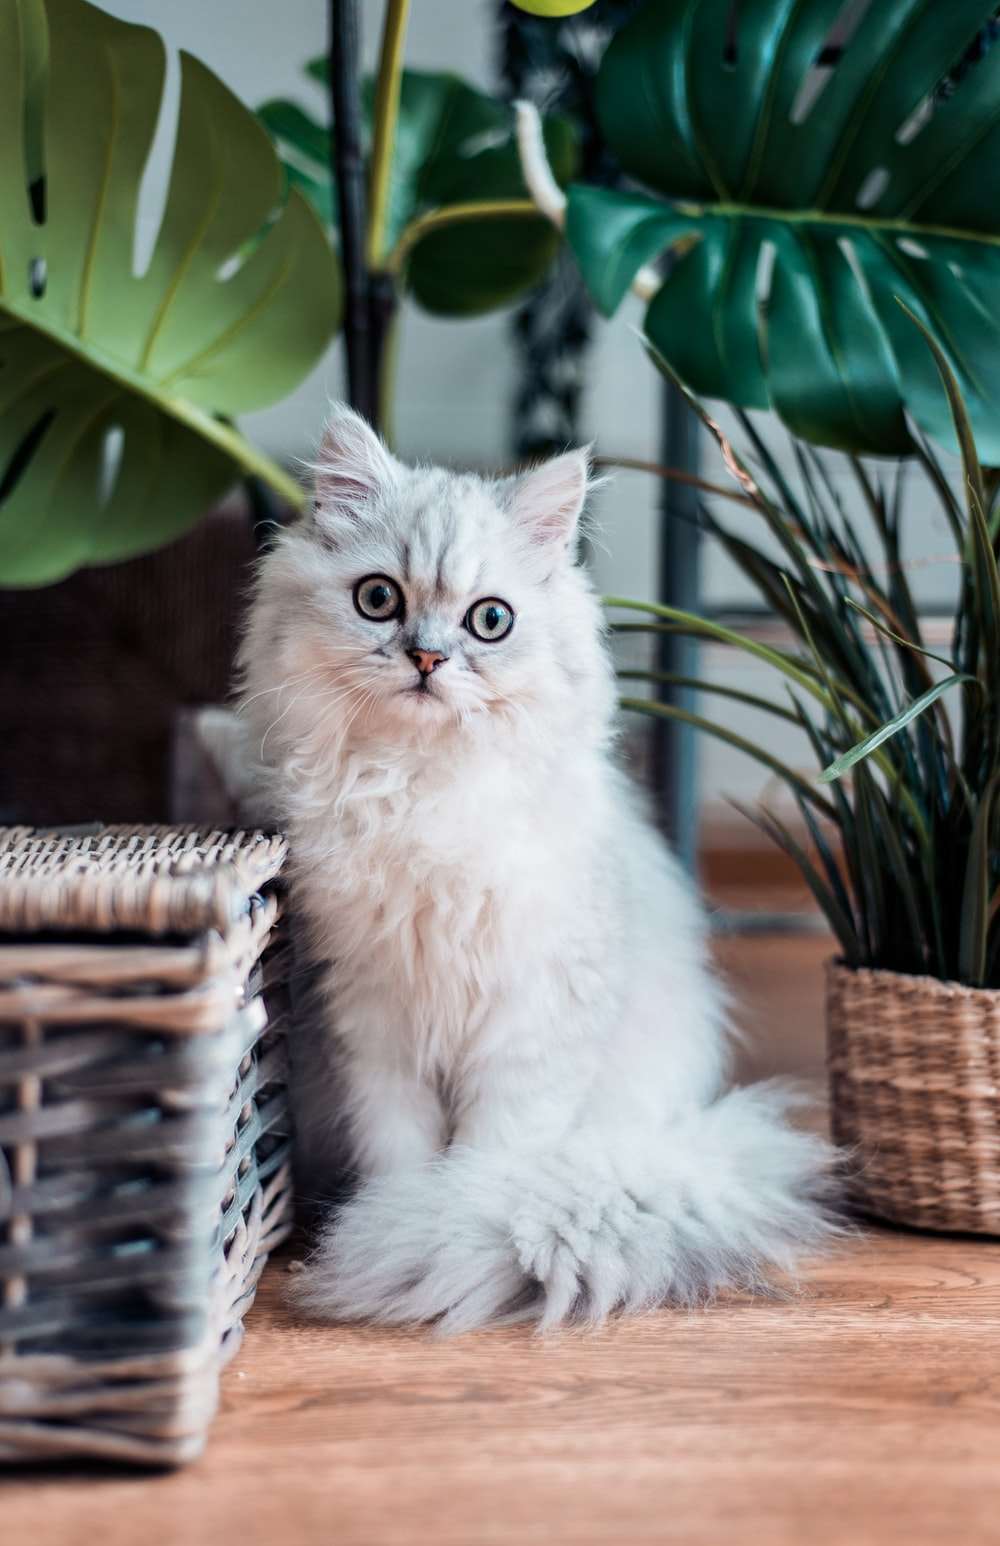 white coated Persian cat sitting on brown wooden surface